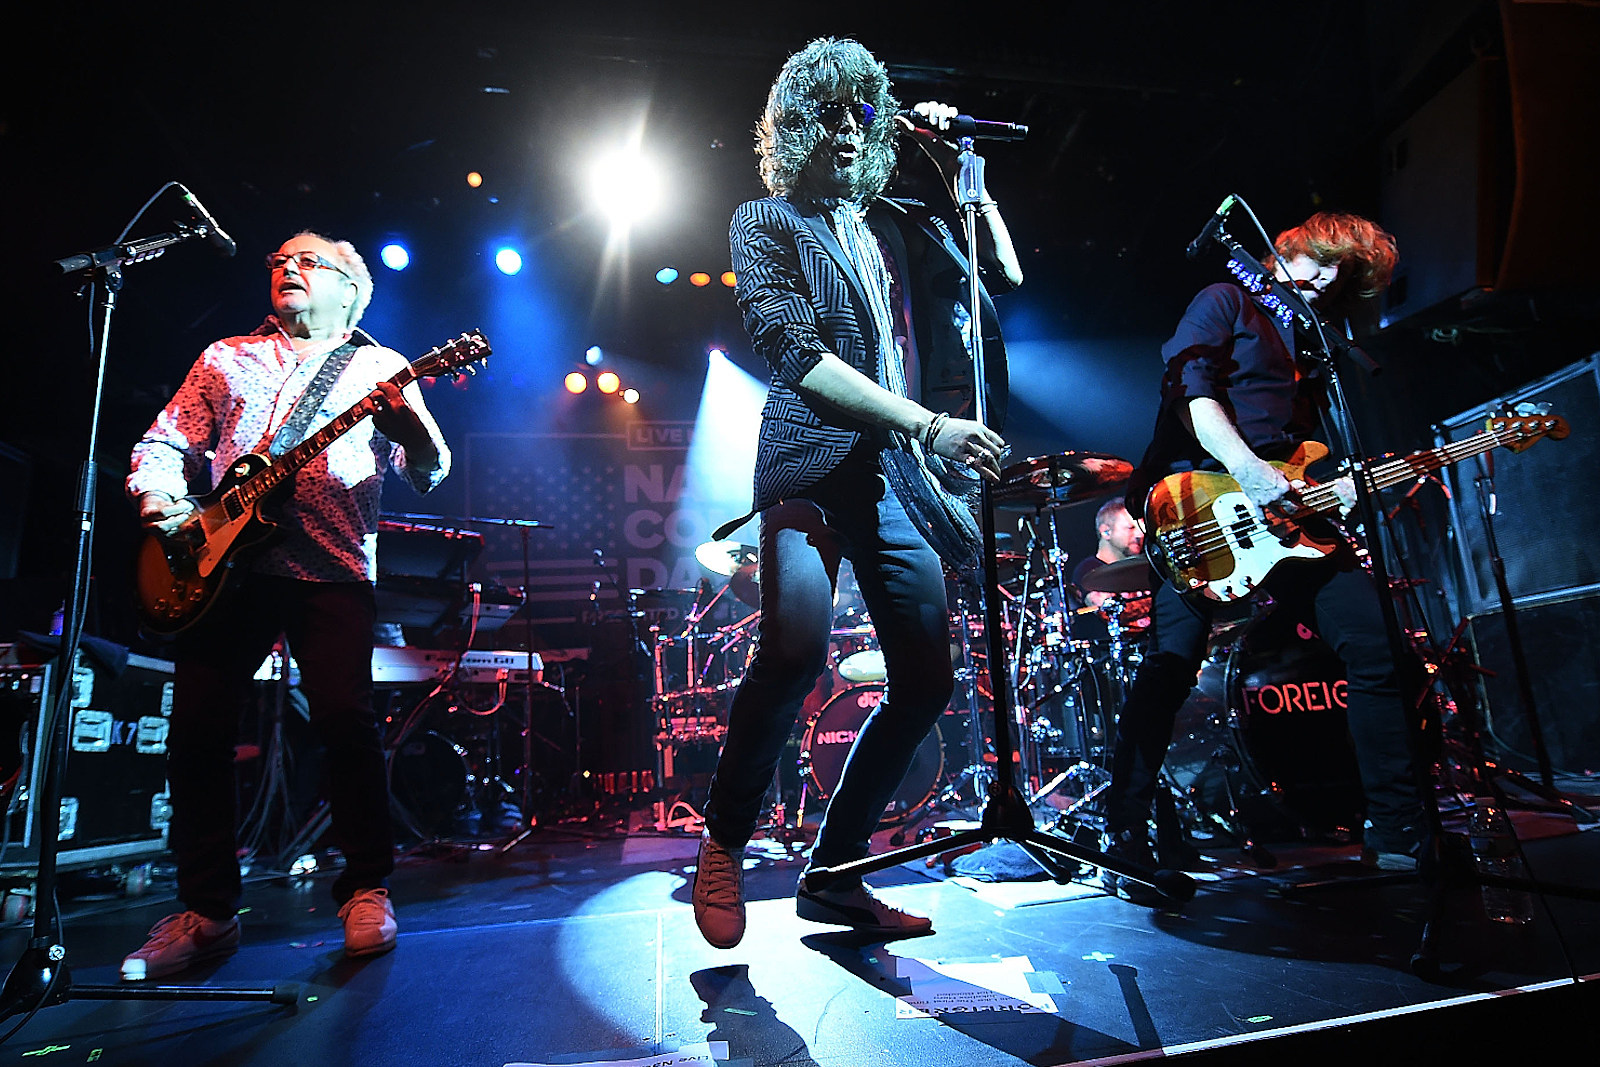 Foreigner Adds Tour Dates, Doubling Number of 2021 Concerts